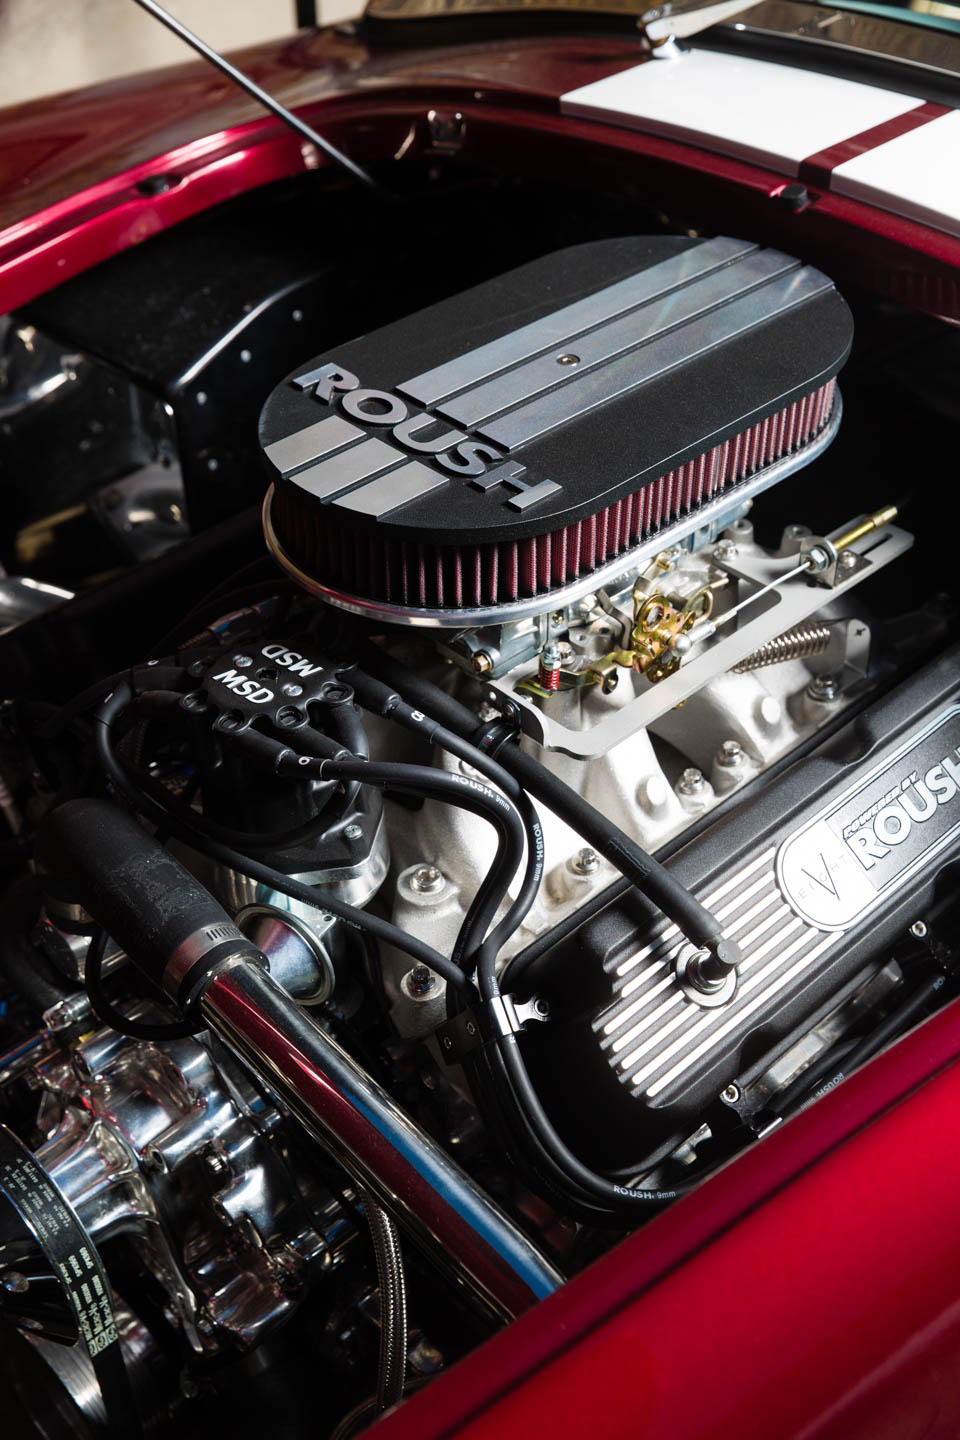 Shelby Cobra replica engine